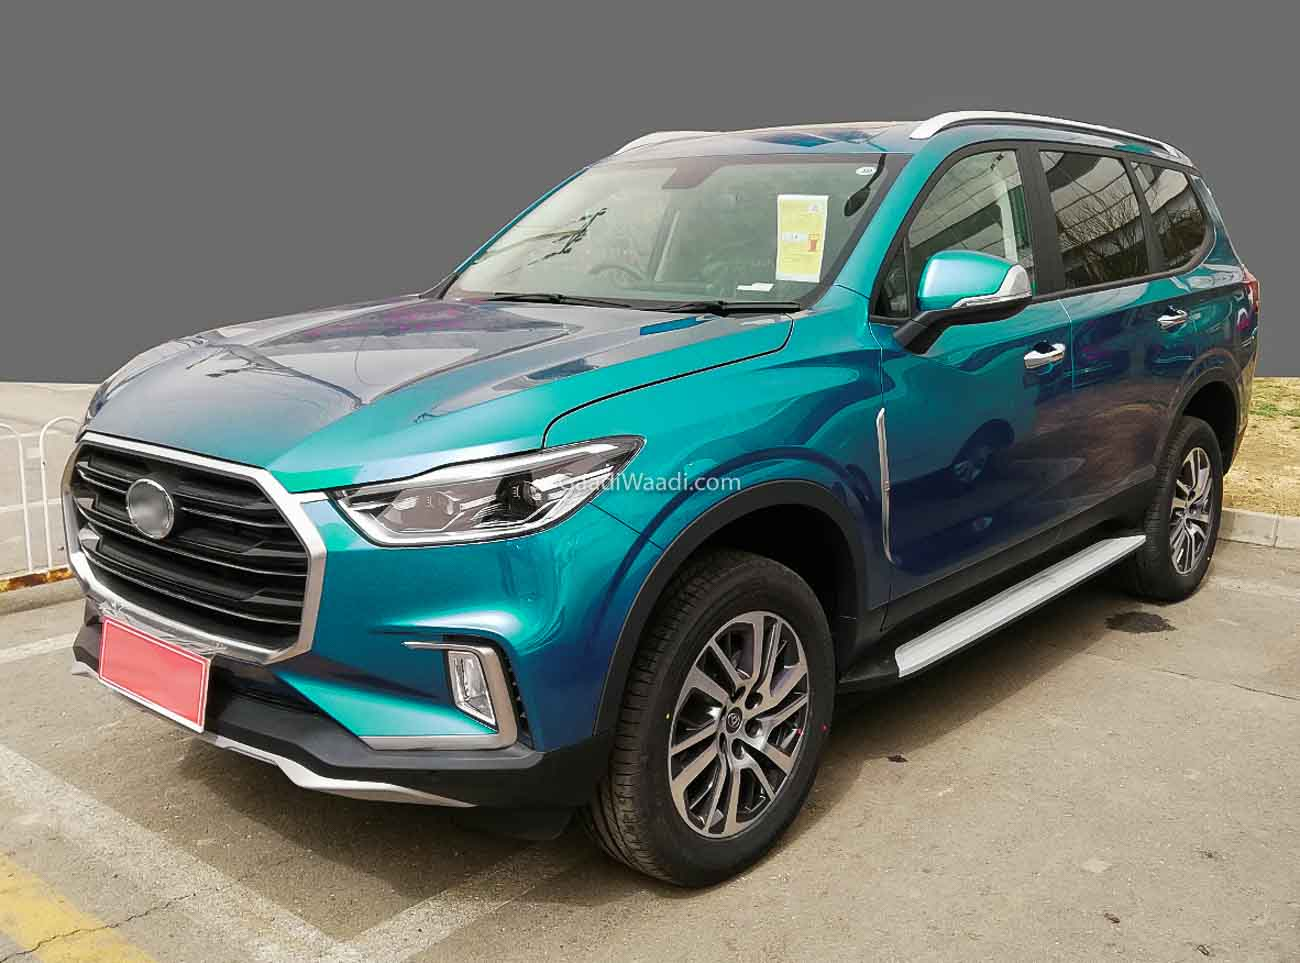 MG's Maxus D90 Based SUV To Debut At 2020 Auto Expo – Details